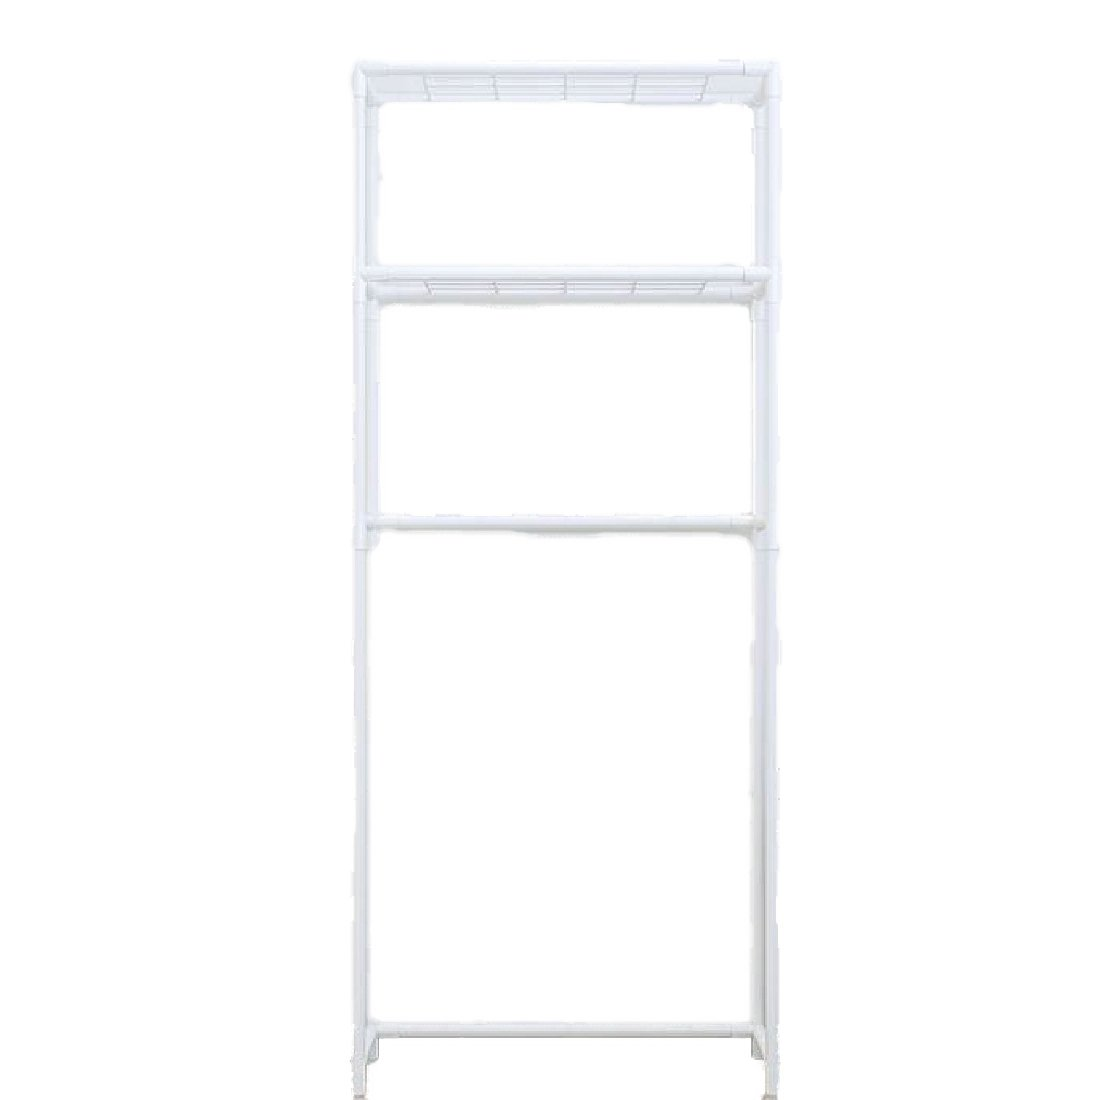 Tootless Shelving Unit Wheels Metal Heavy Duty Casters Solid Espresso Steel Wire Storage Shelves White 2 shelves